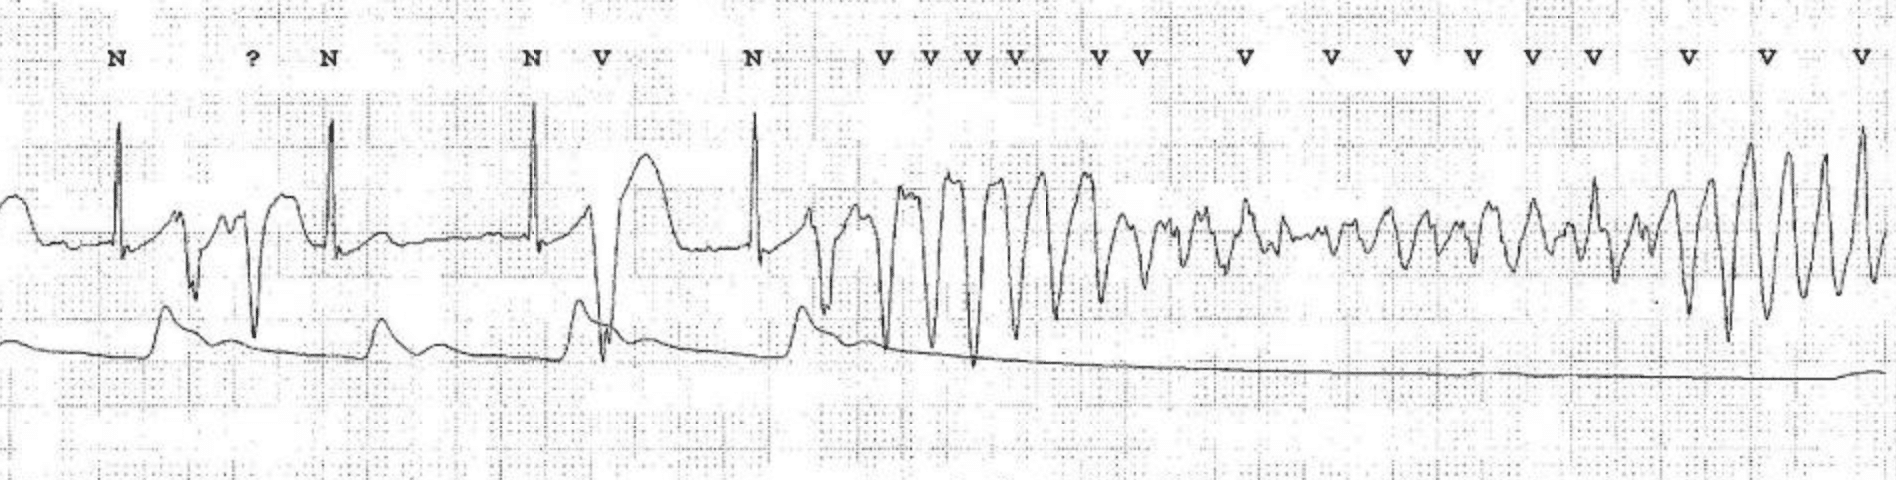 ECG showing an episode of sinus rhythm (with multiple ventricular premature beats) spontaneously converting to Torsade de Pointes ventricular tachycardia. Notice how arterial blood pressure (ABP) drops at the onset of TdP. ECG by Nakstad et al (Scand J Trauma Resusc Emerg Med. 2010; 18: 7)